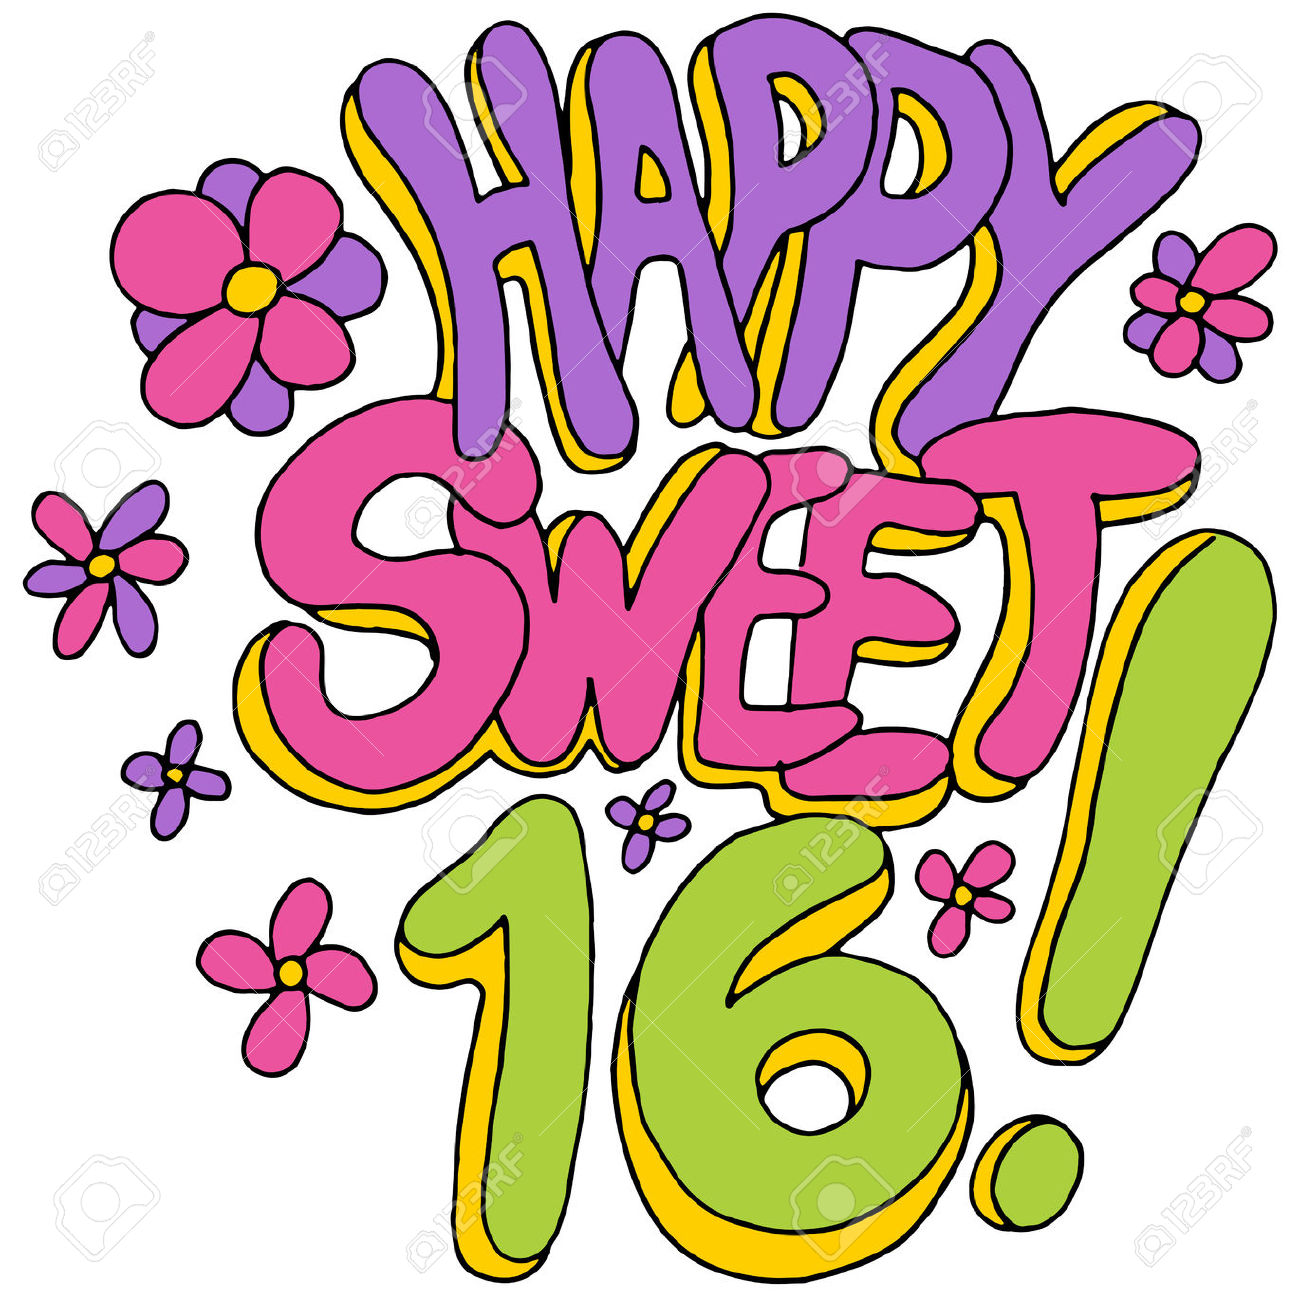 Sweet 16 Clip Art ... Resolut - Sweet 16 Clip Art